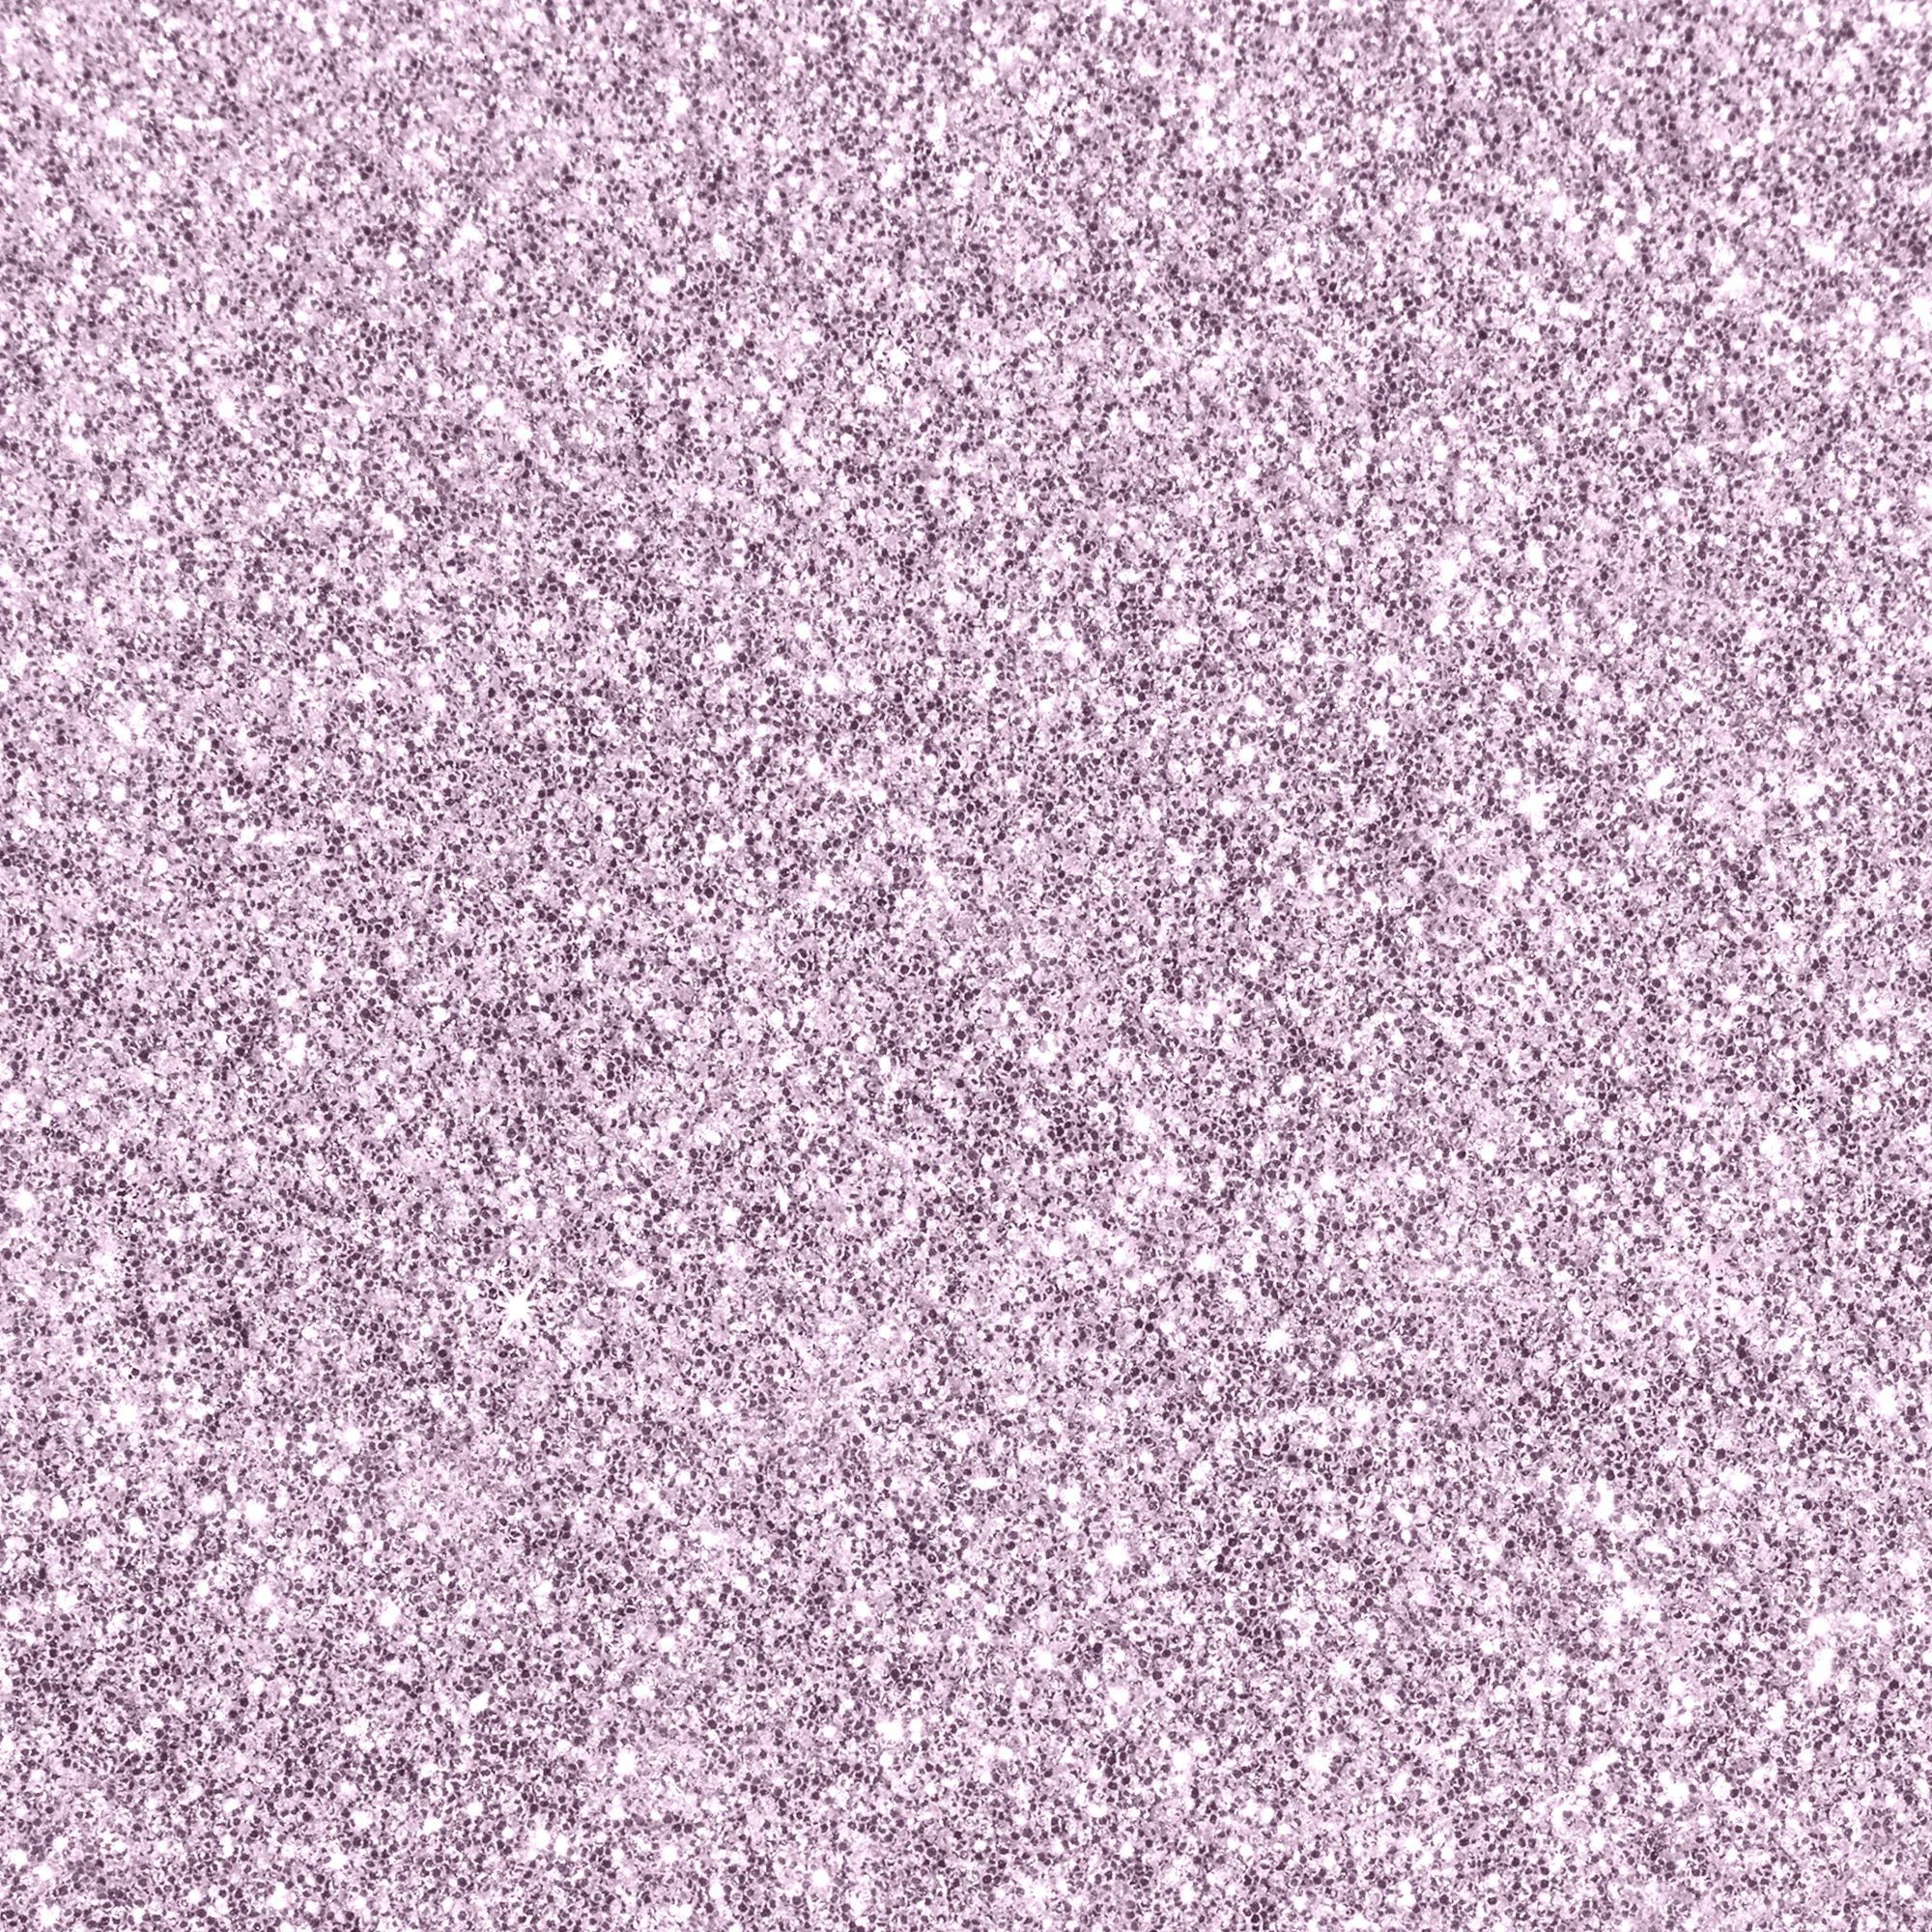 Res: 2000x2000, Muriva Sparkle Pink Texture Metallic Glitter Wallpaper | Departments | DIY  at B&Q